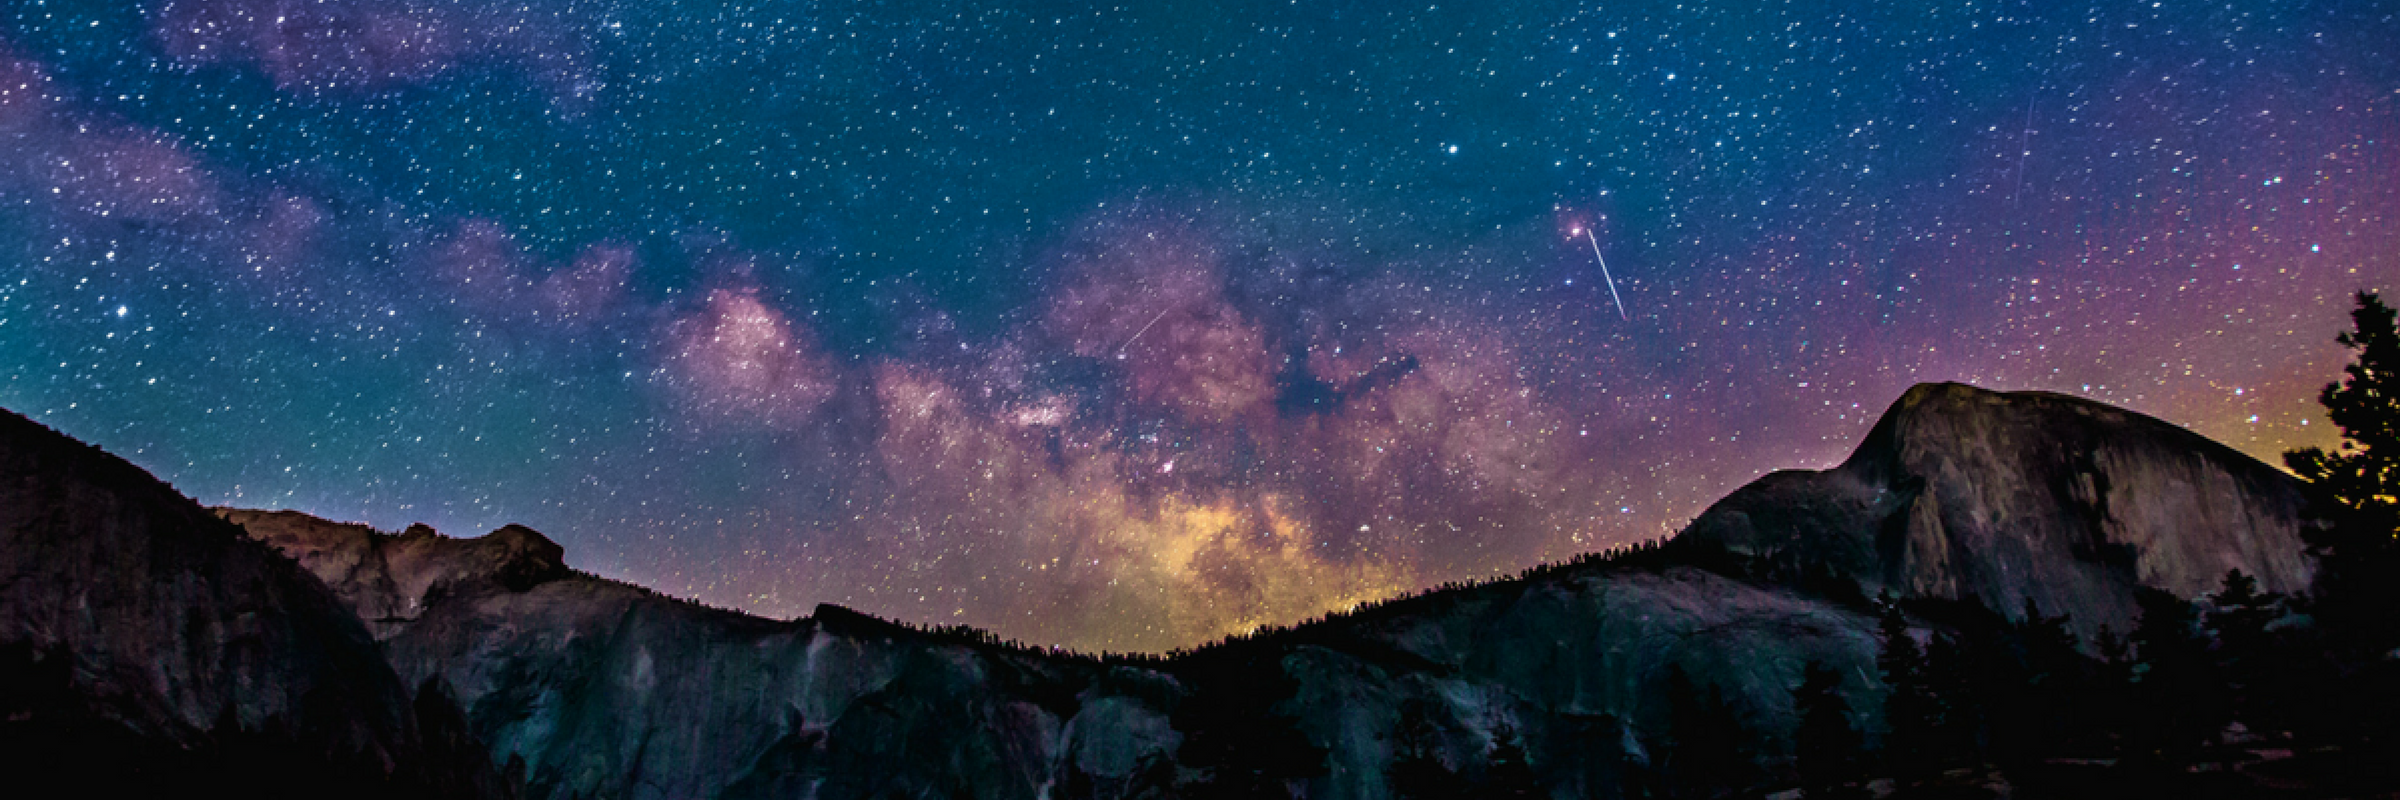 Starry Sky Slider Image